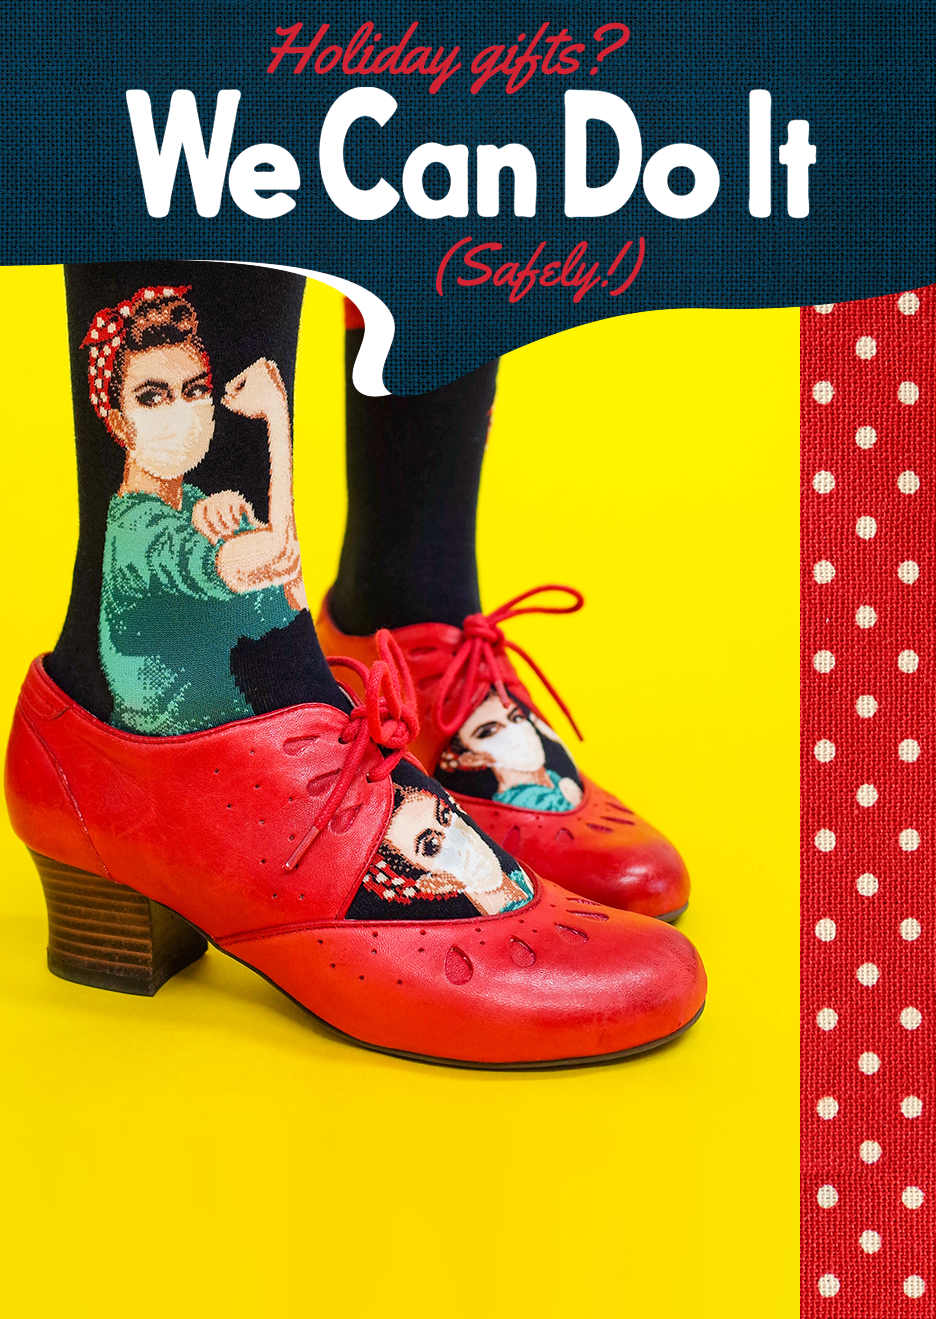 Nurse Rosie the Riveter wears a face mask on a novelty sock, worn with vintage red pump shoes.